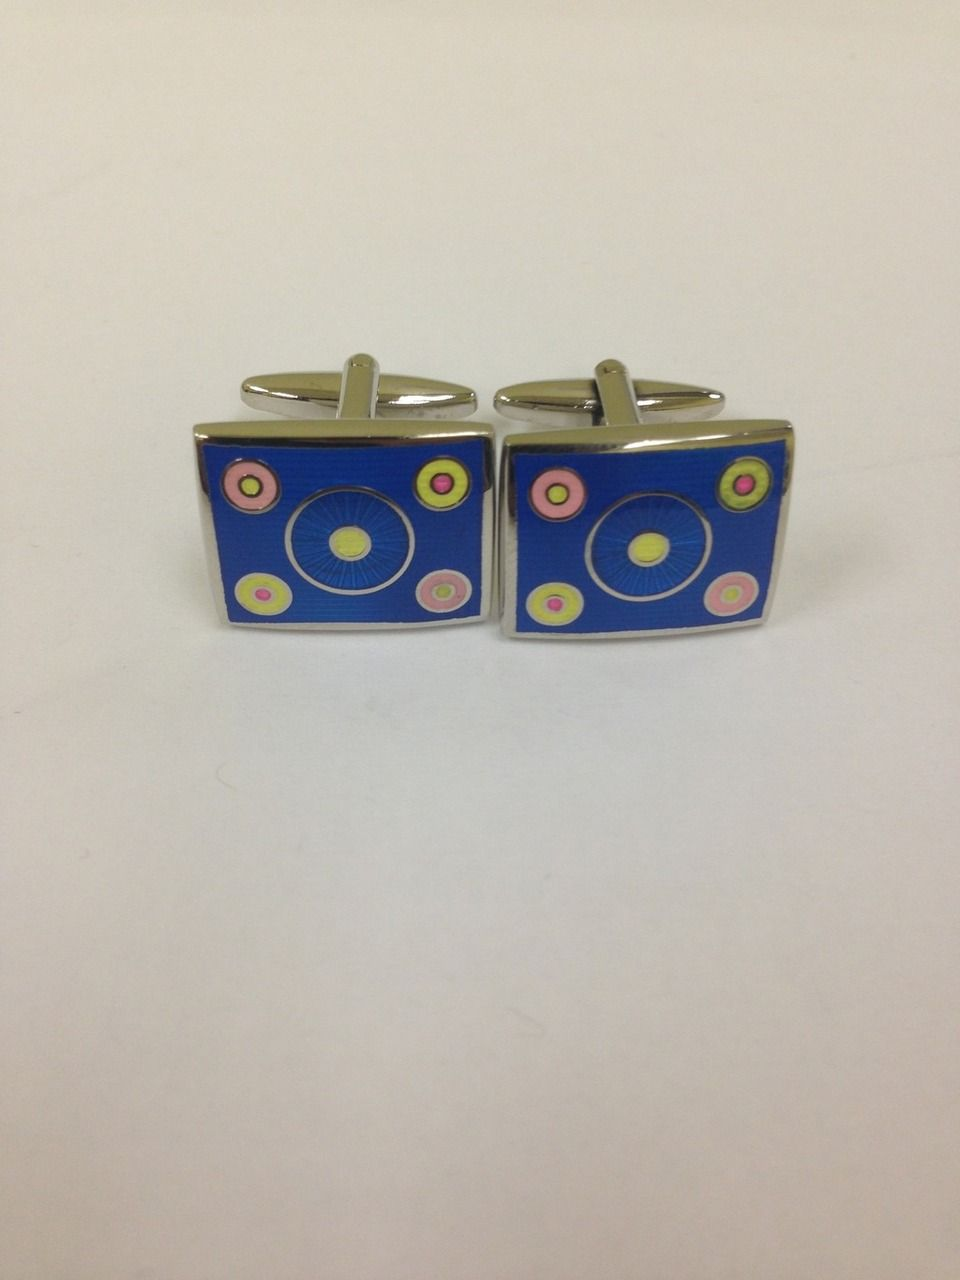 2 Pc. Blue Circle Crazy Design Cufflinks